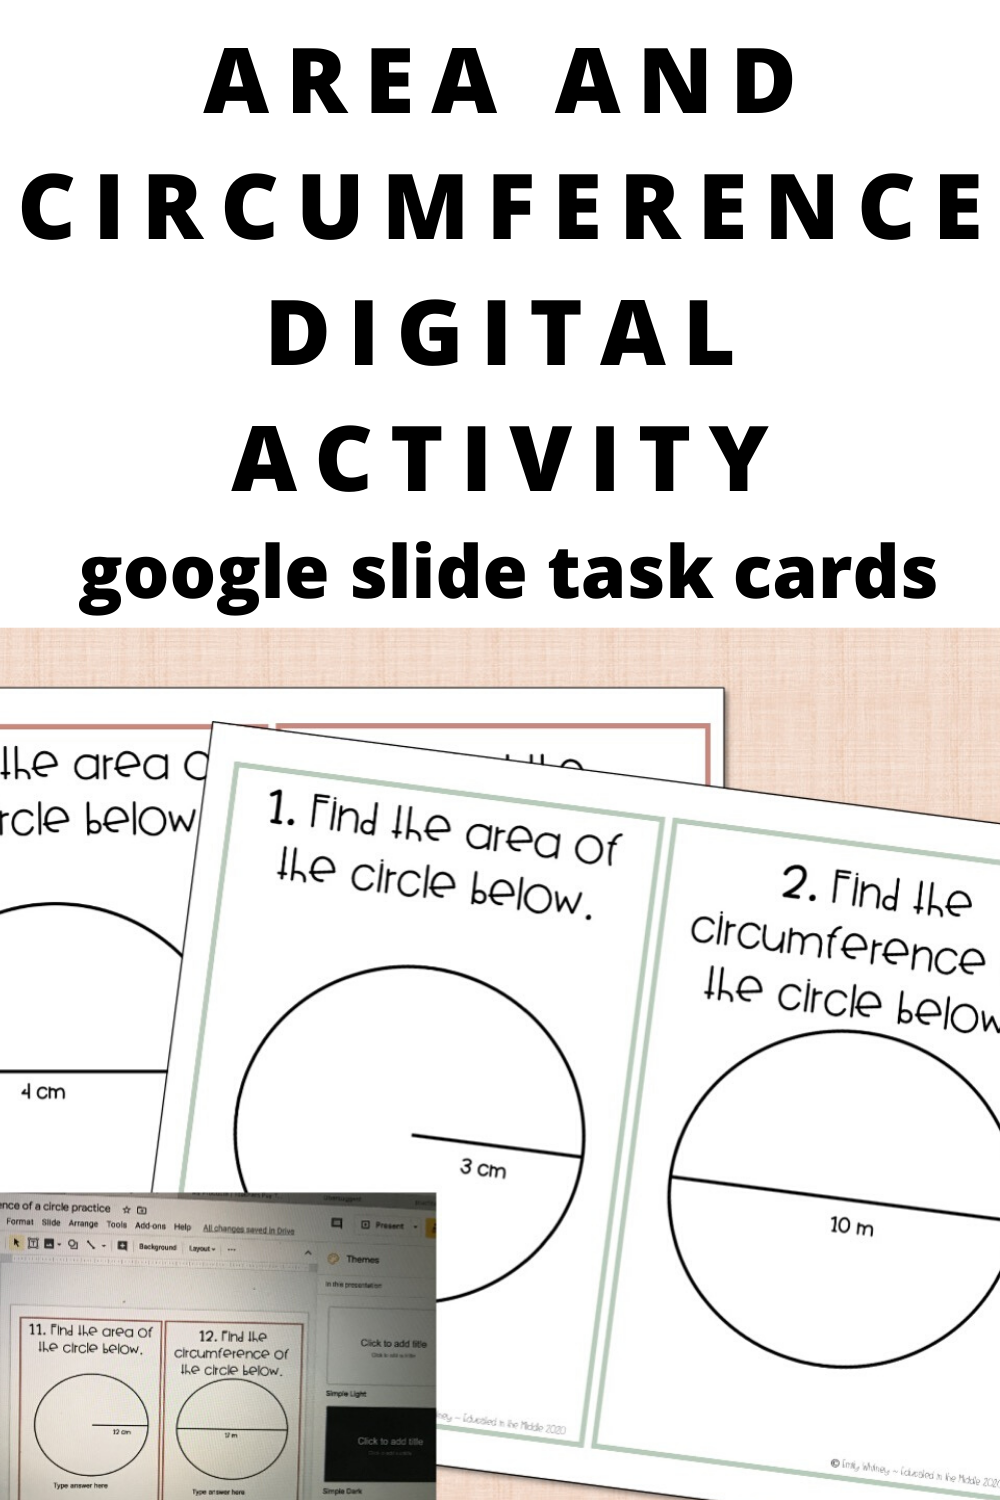 Area And Circumference Of A Circle Task Cards For Distance Learning In 2020 Google Classroom Middle School Google Classroom Digital Activities [ 1500 x 1000 Pixel ]